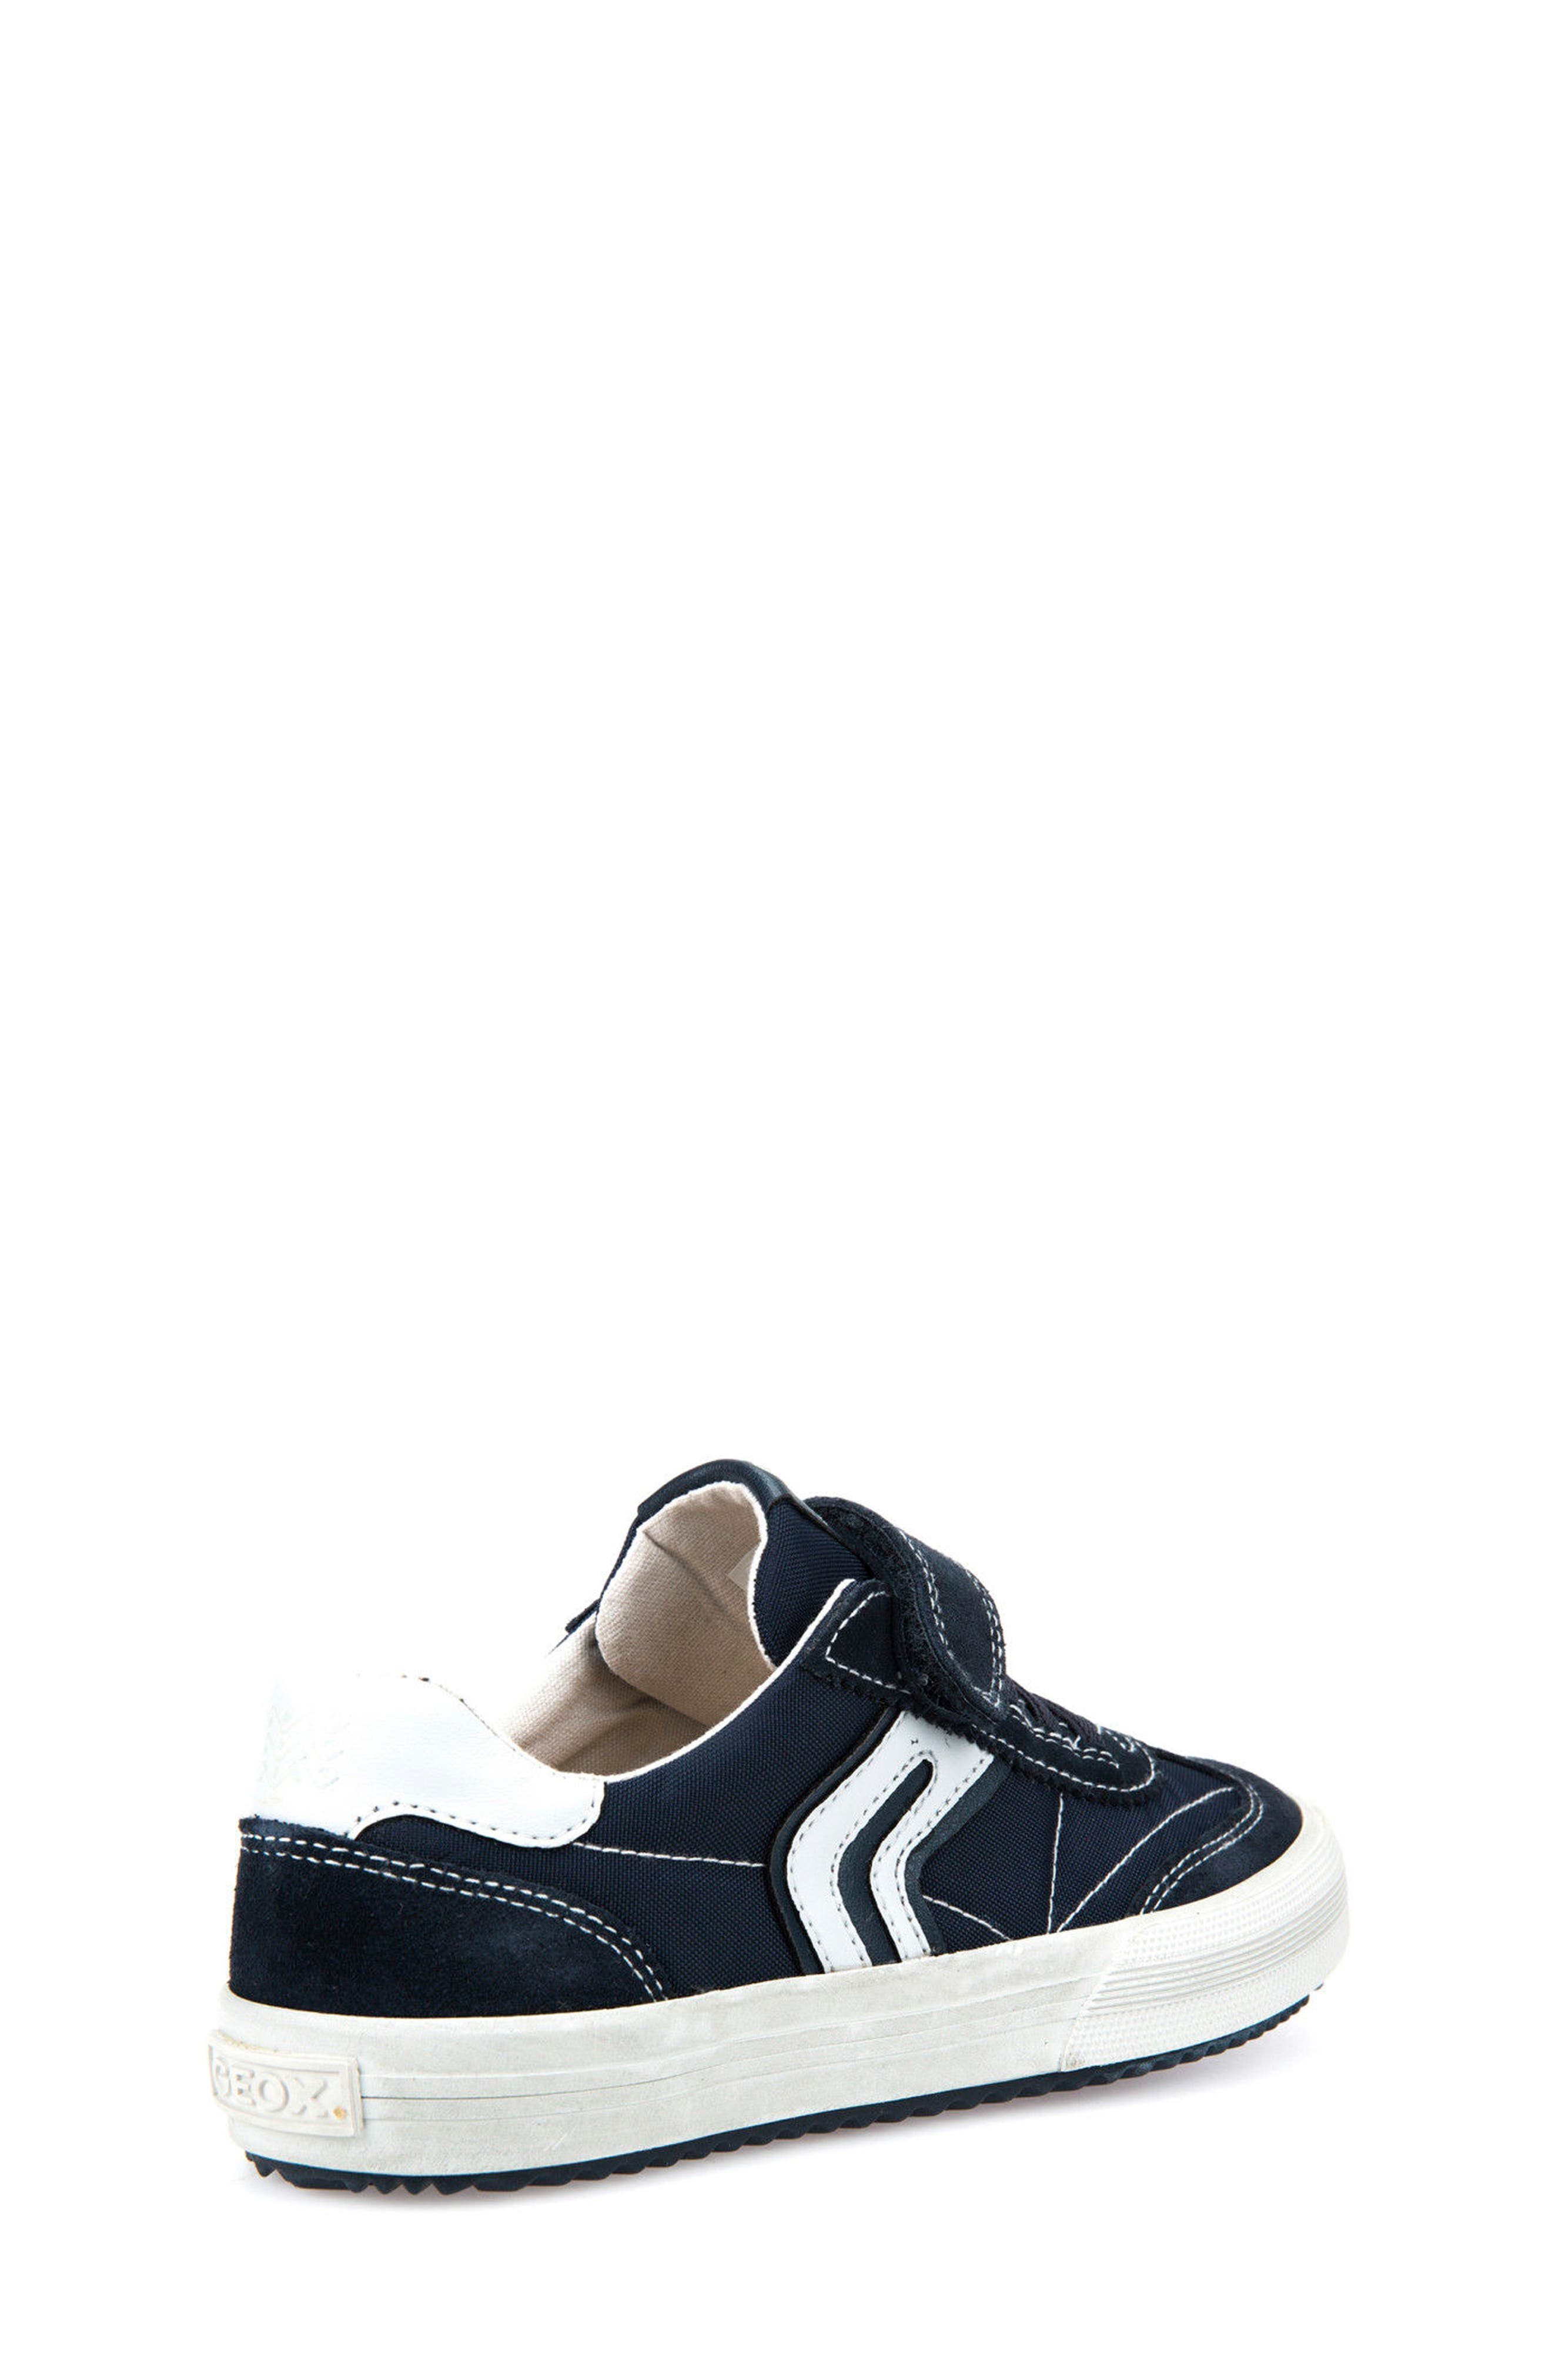 Alonisso Low Top Sneaker,                             Alternate thumbnail 2, color,                             NAVY/ GREY